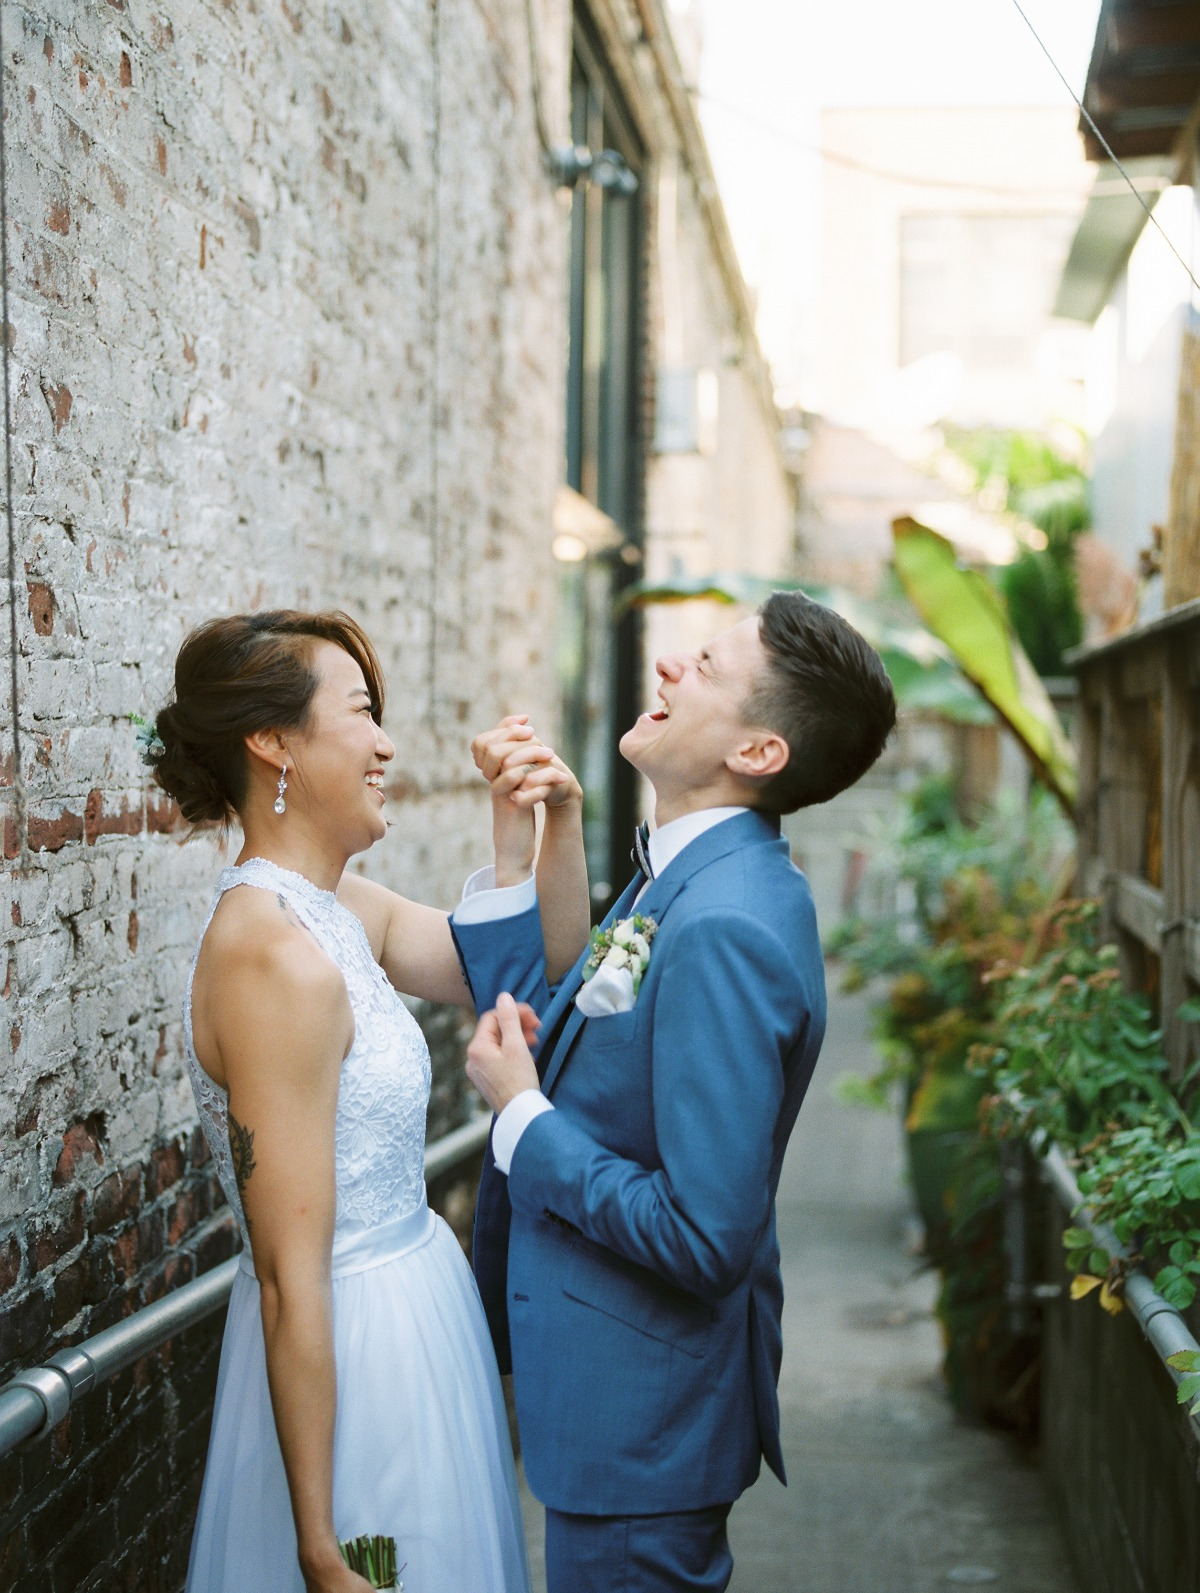 How To Have A Fun and Unforgettable Wedding With Family and Friends